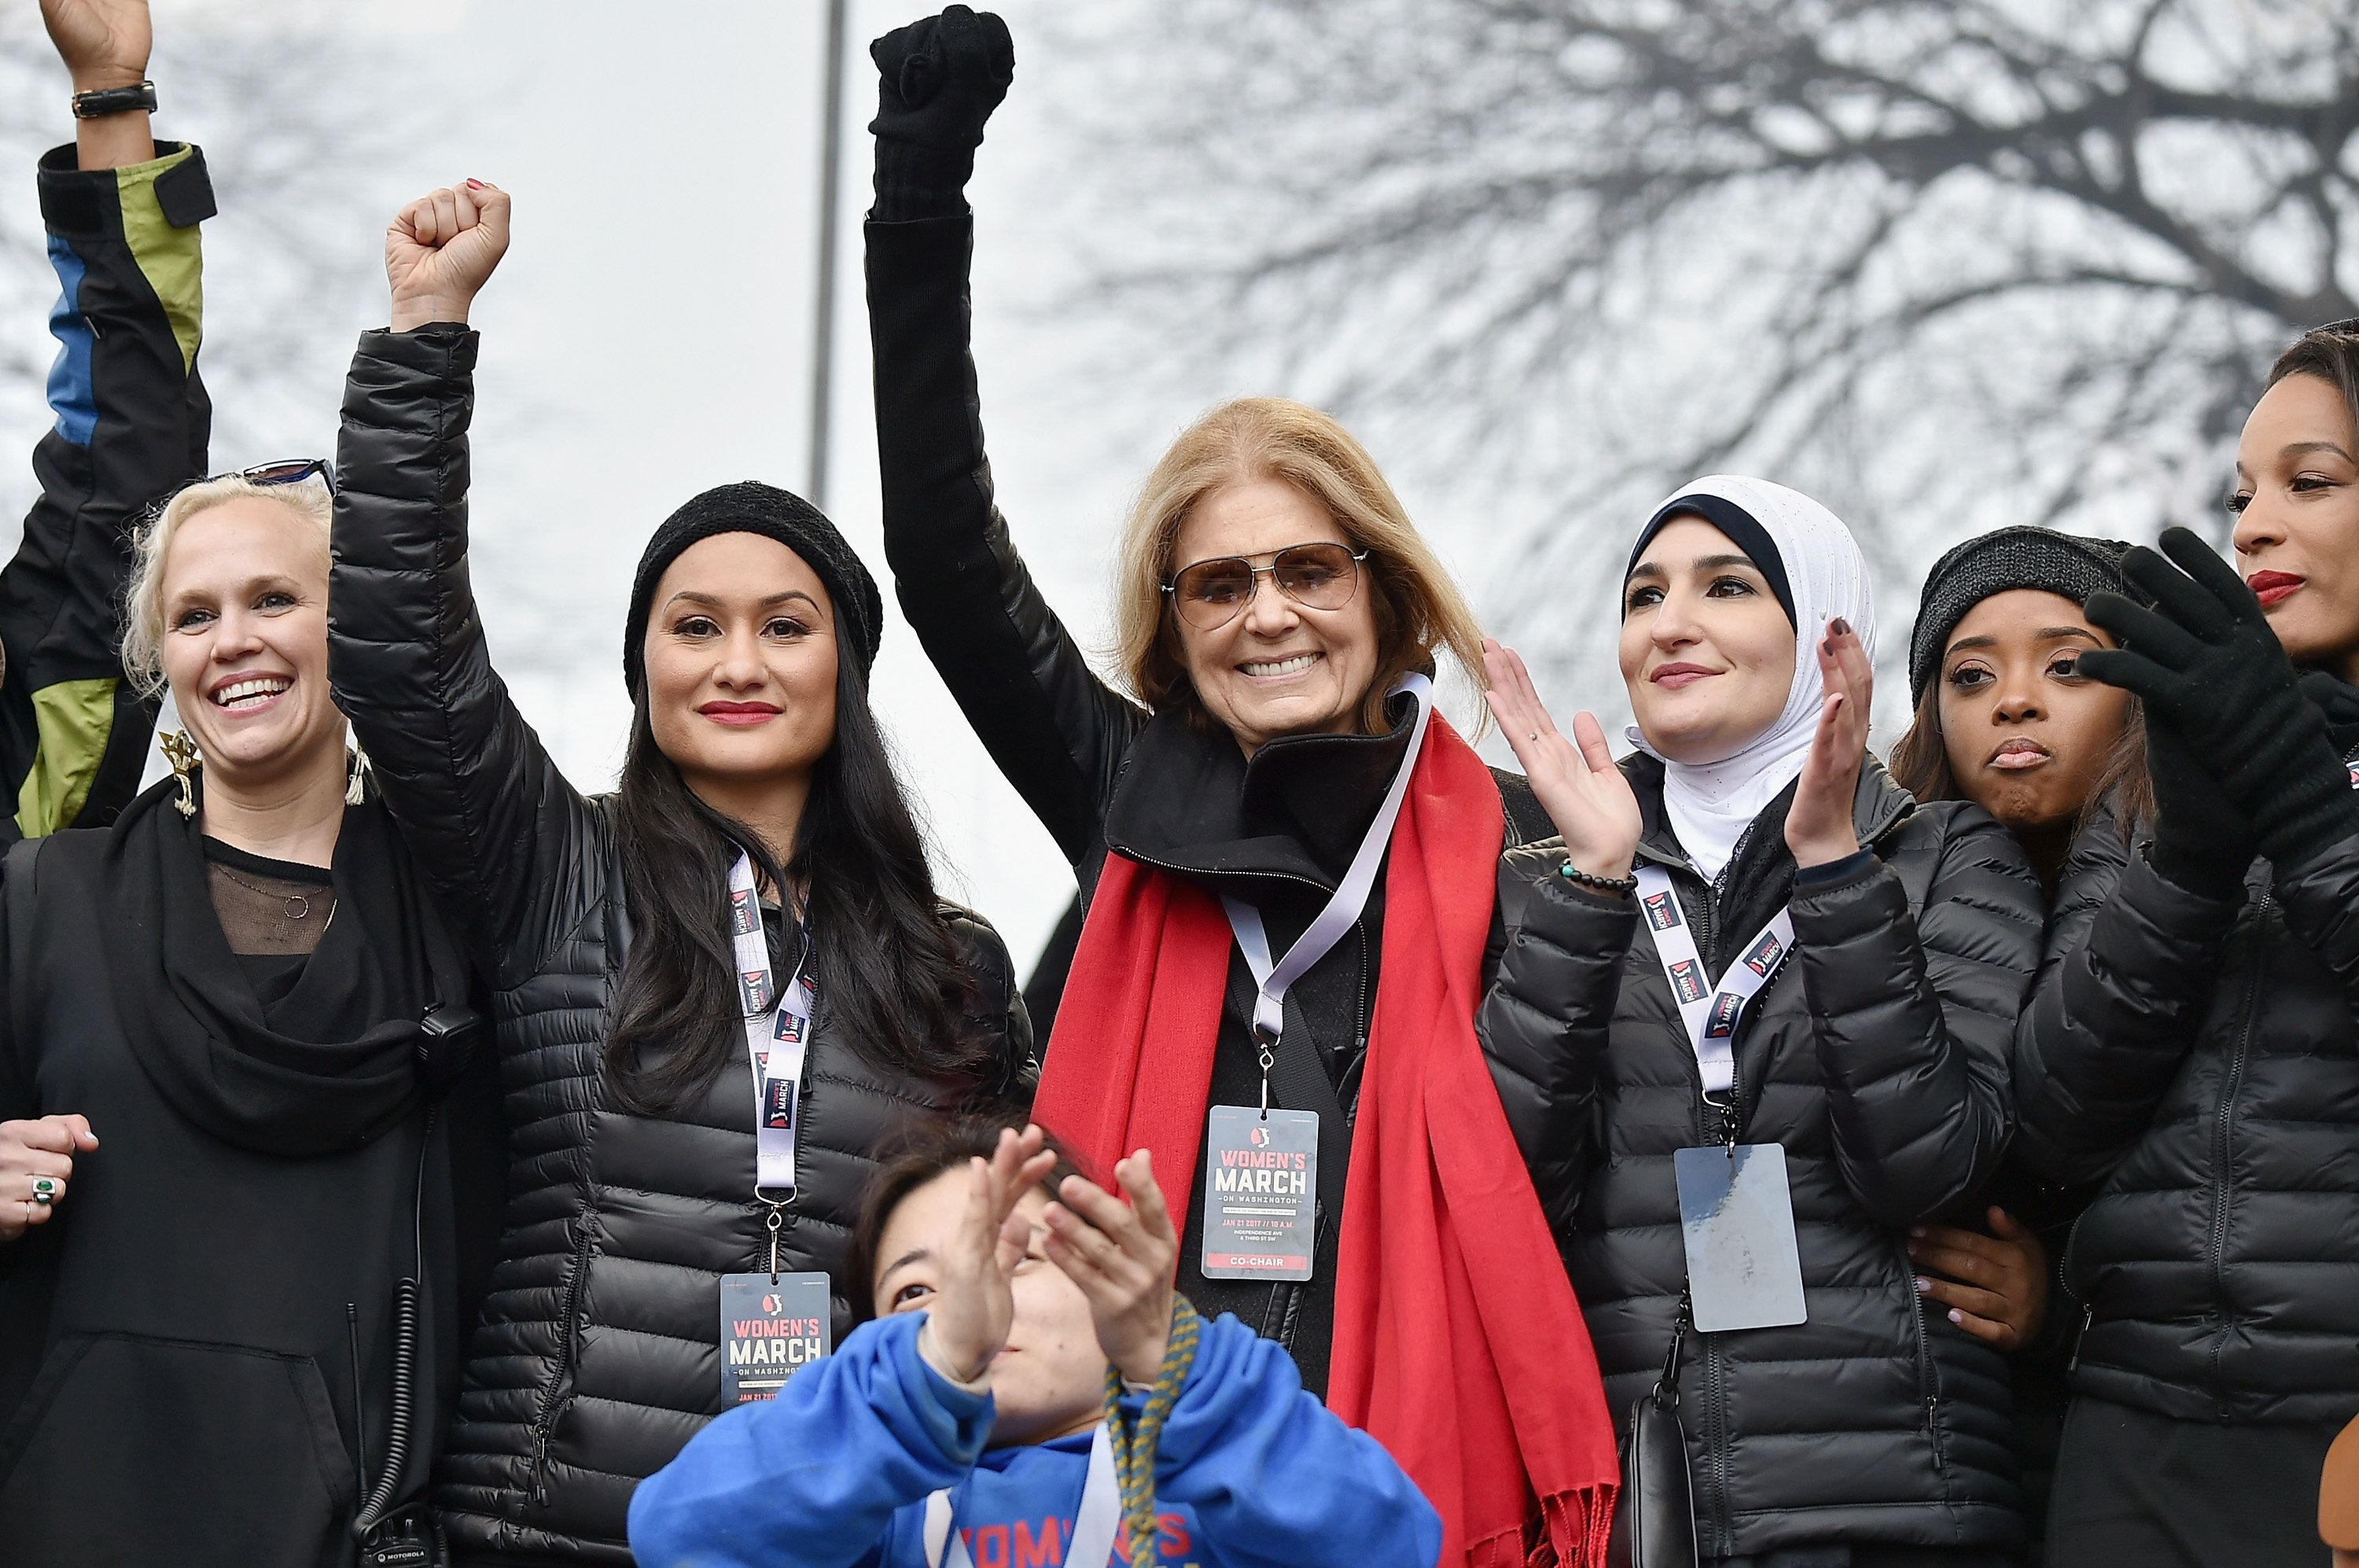 Westlake Legal Group 5c41004a360000ef03680b70 The Core Issue Plaguing The Women's March Is Woven Into Its Very Fabric